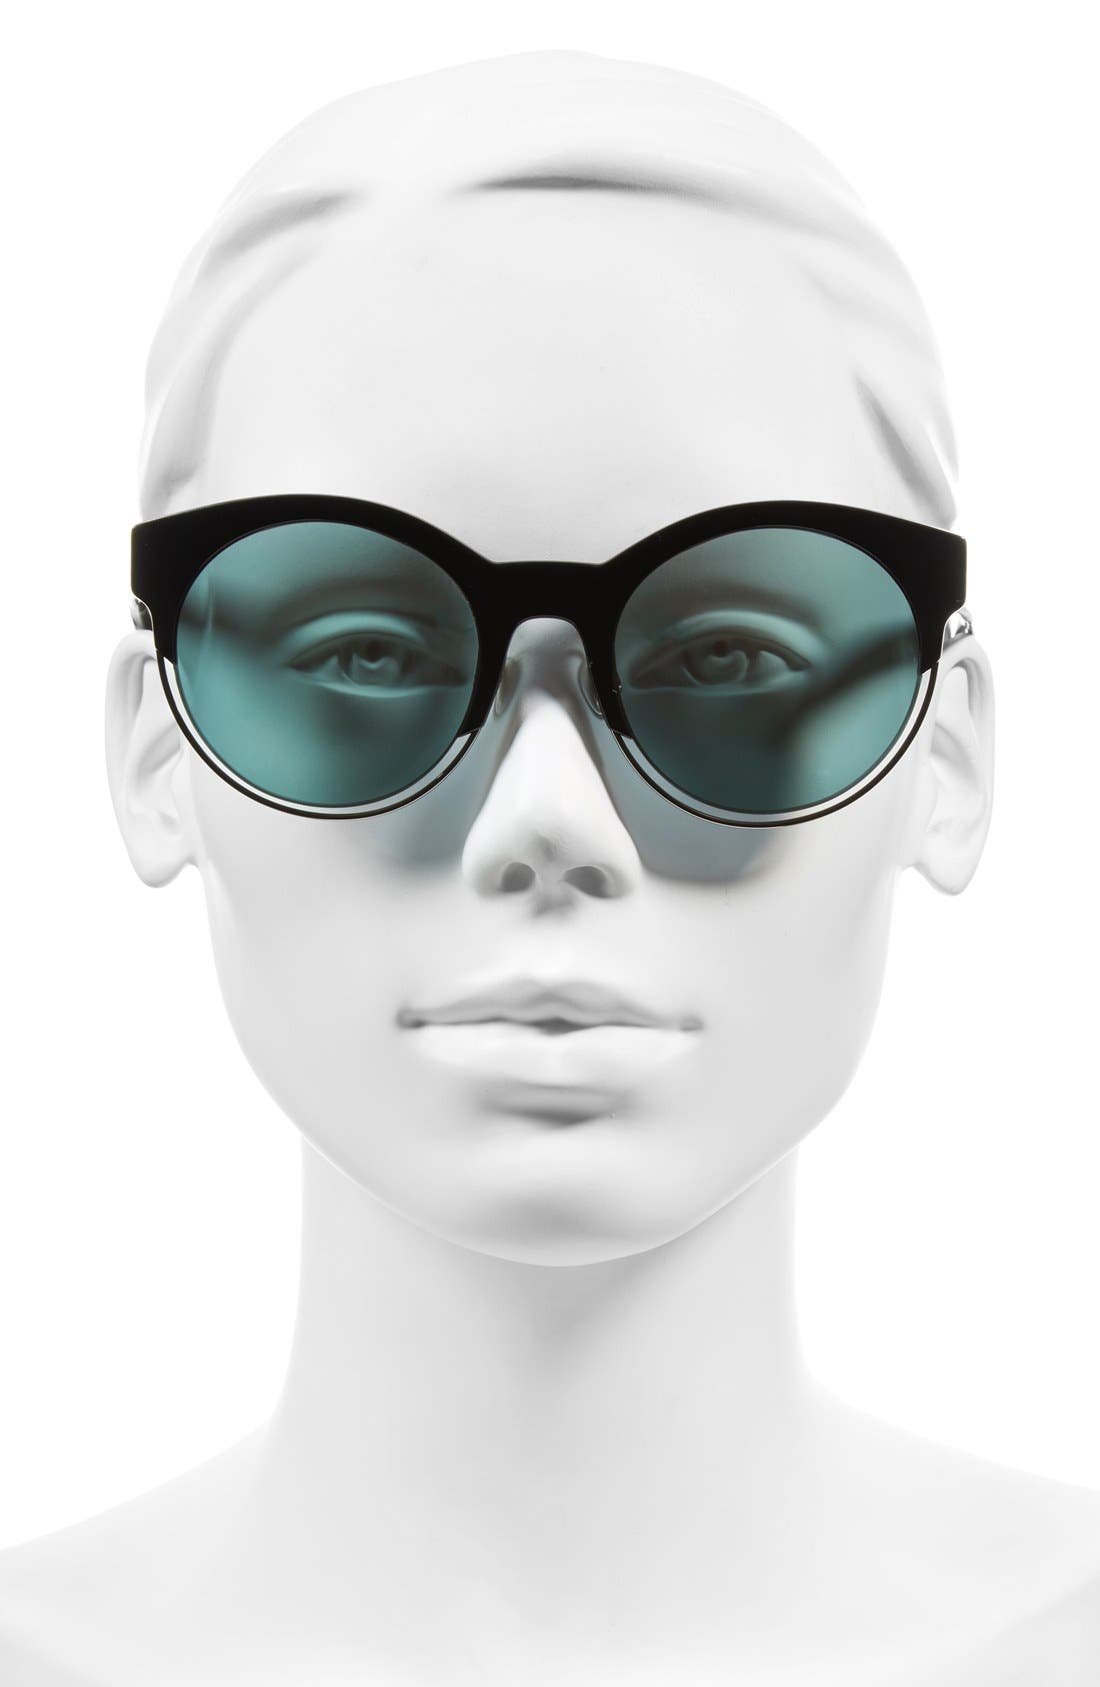 Siderall 1 53mm Round Sunglasses,                             Alternate thumbnail 12, color,